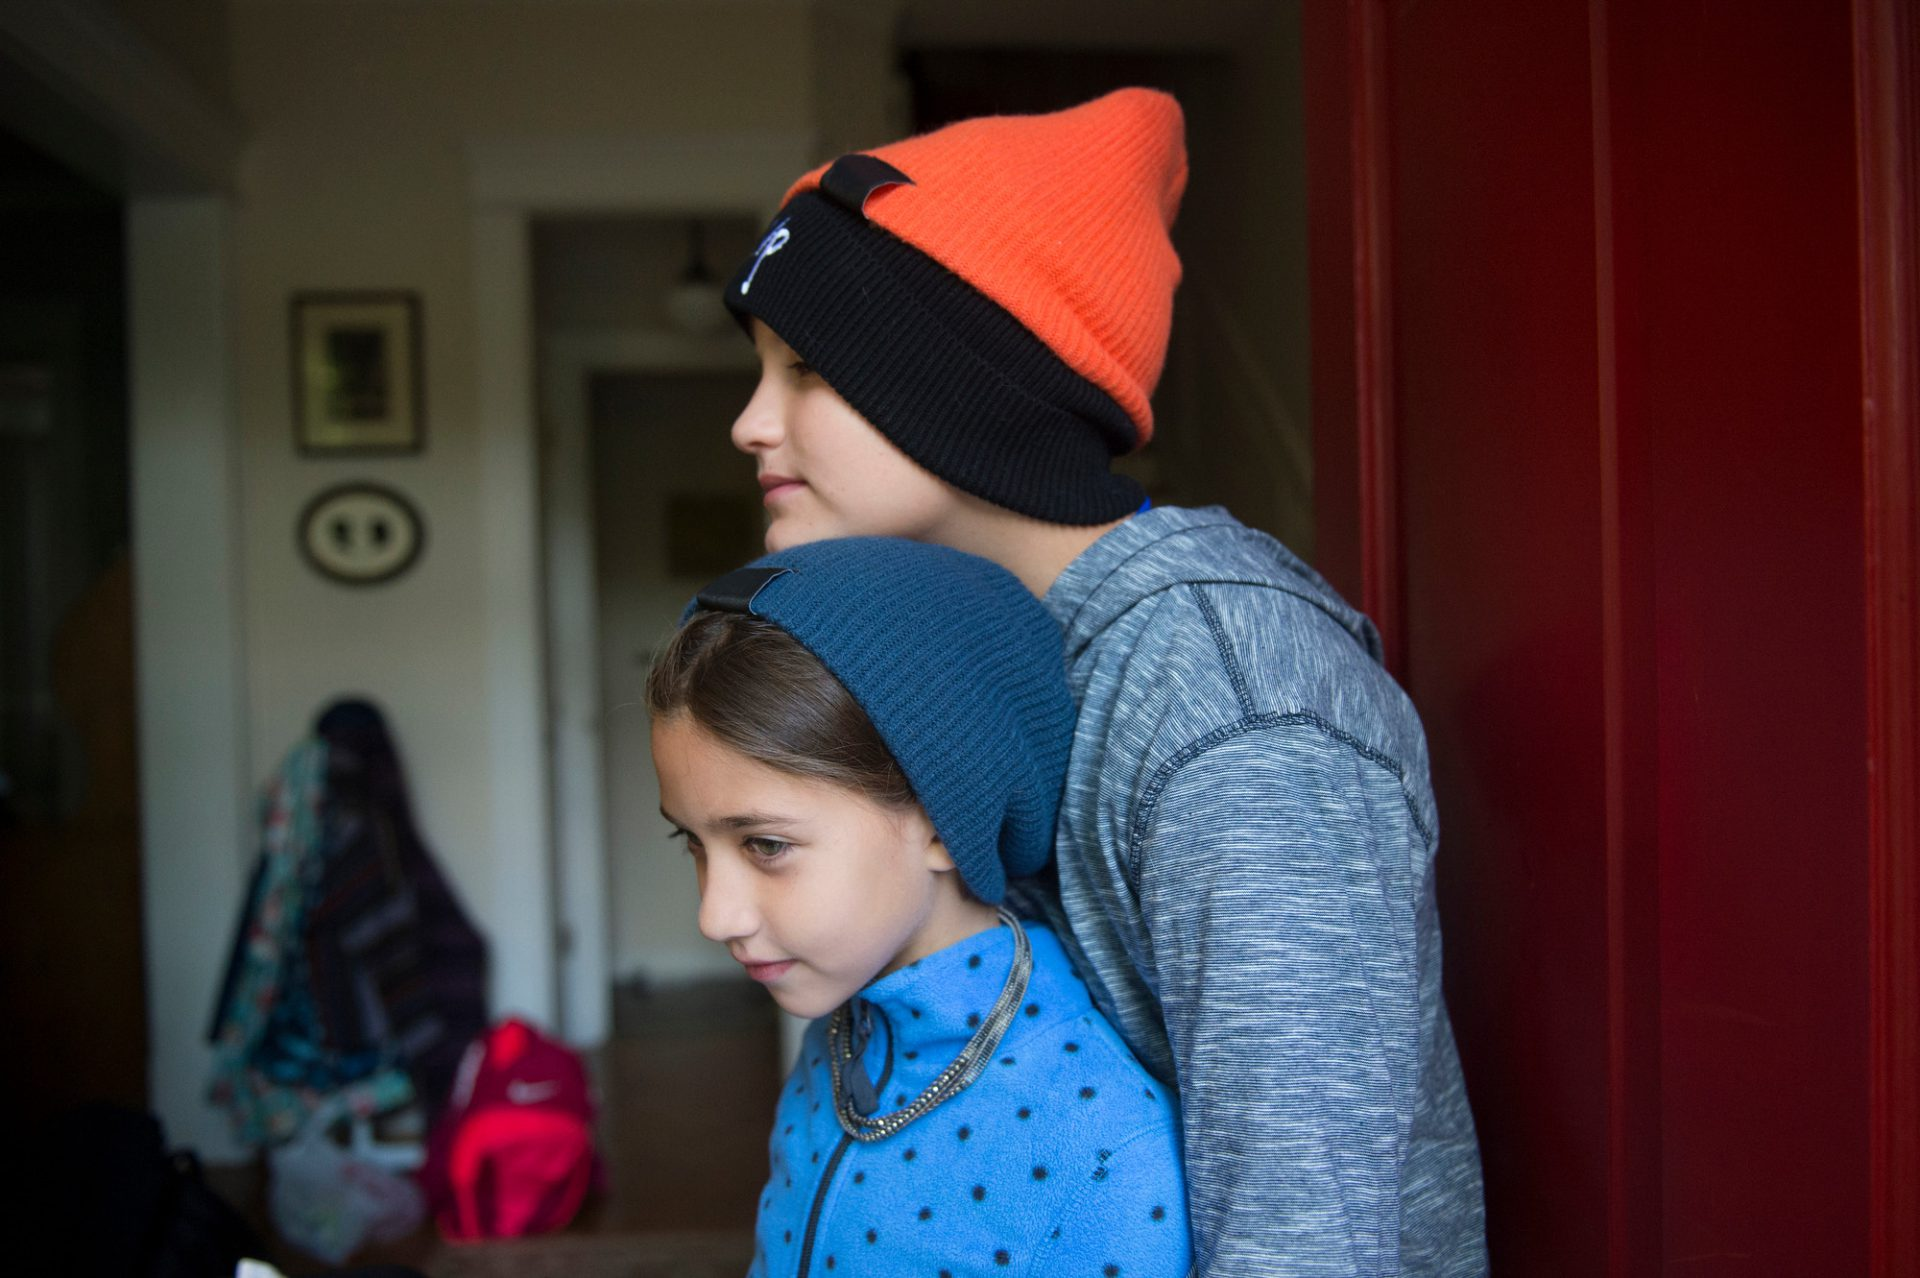 Photo: A brother leans on his sister in their home.